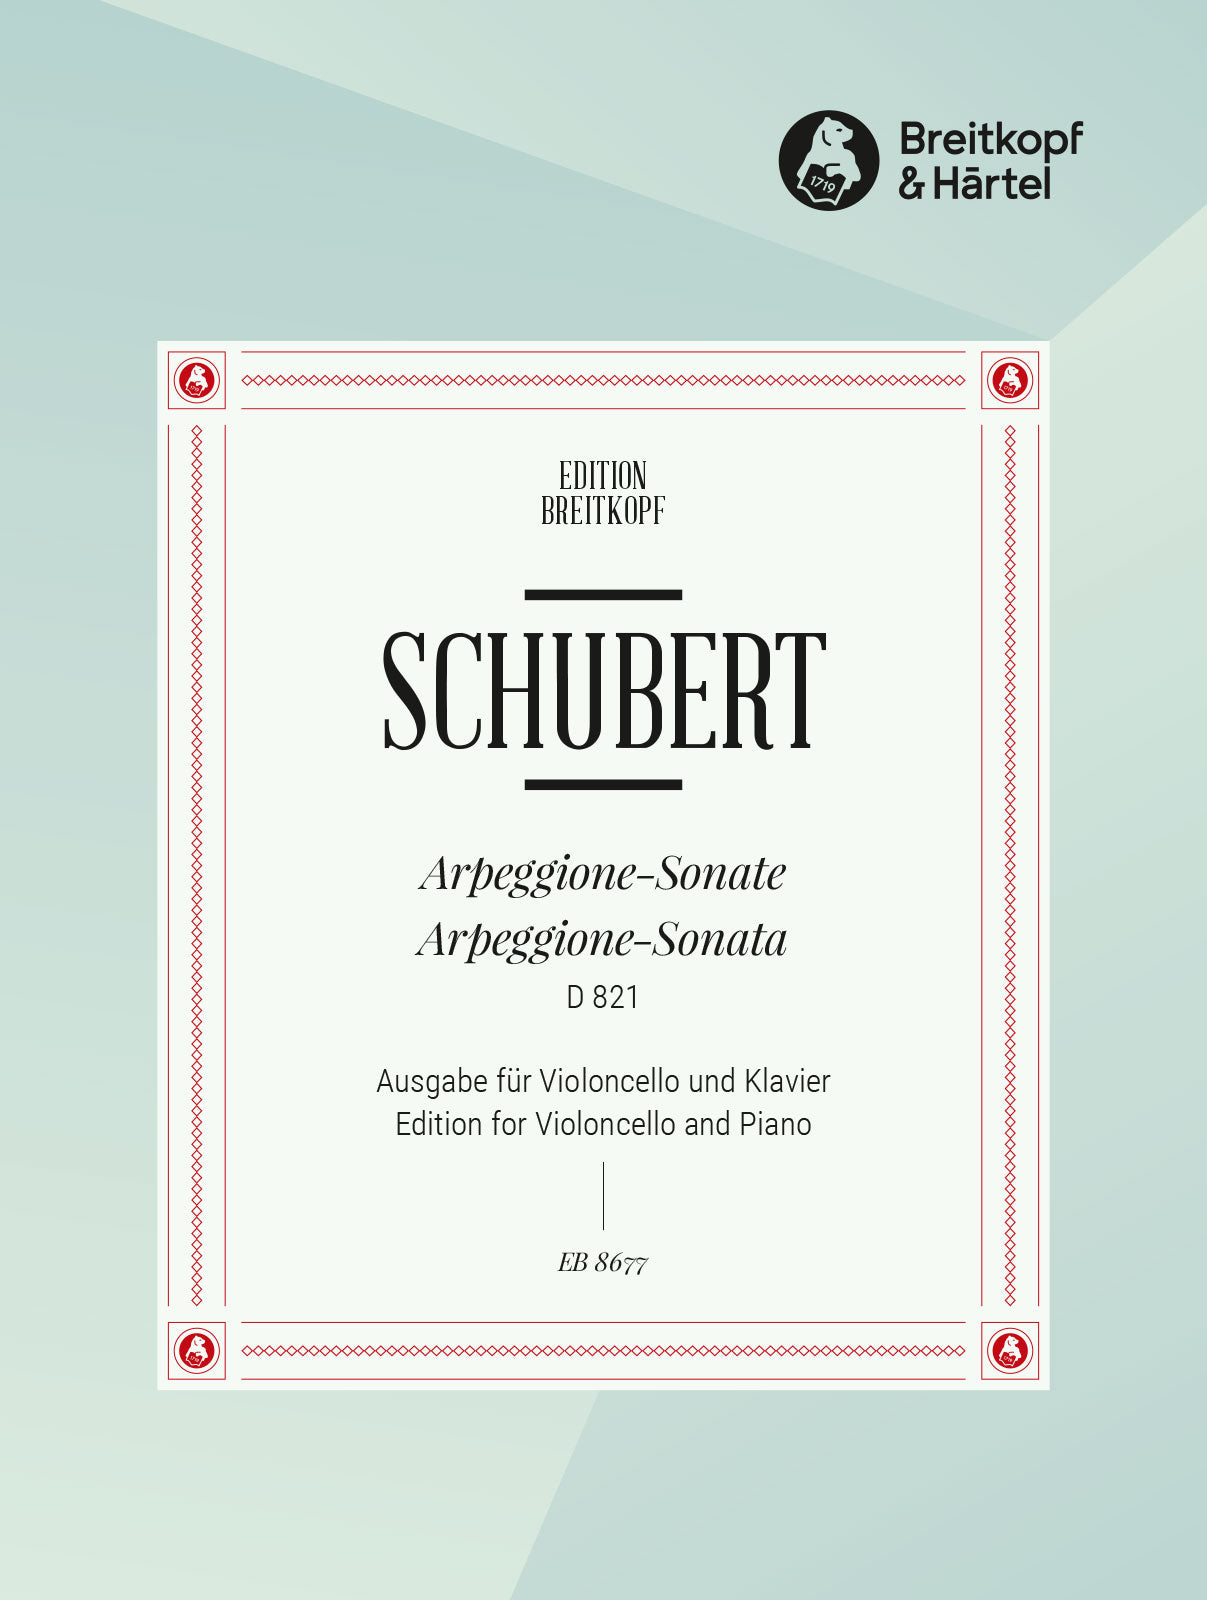 Schubert: Arpeggione Sonata, D 821 (arr. for cello)